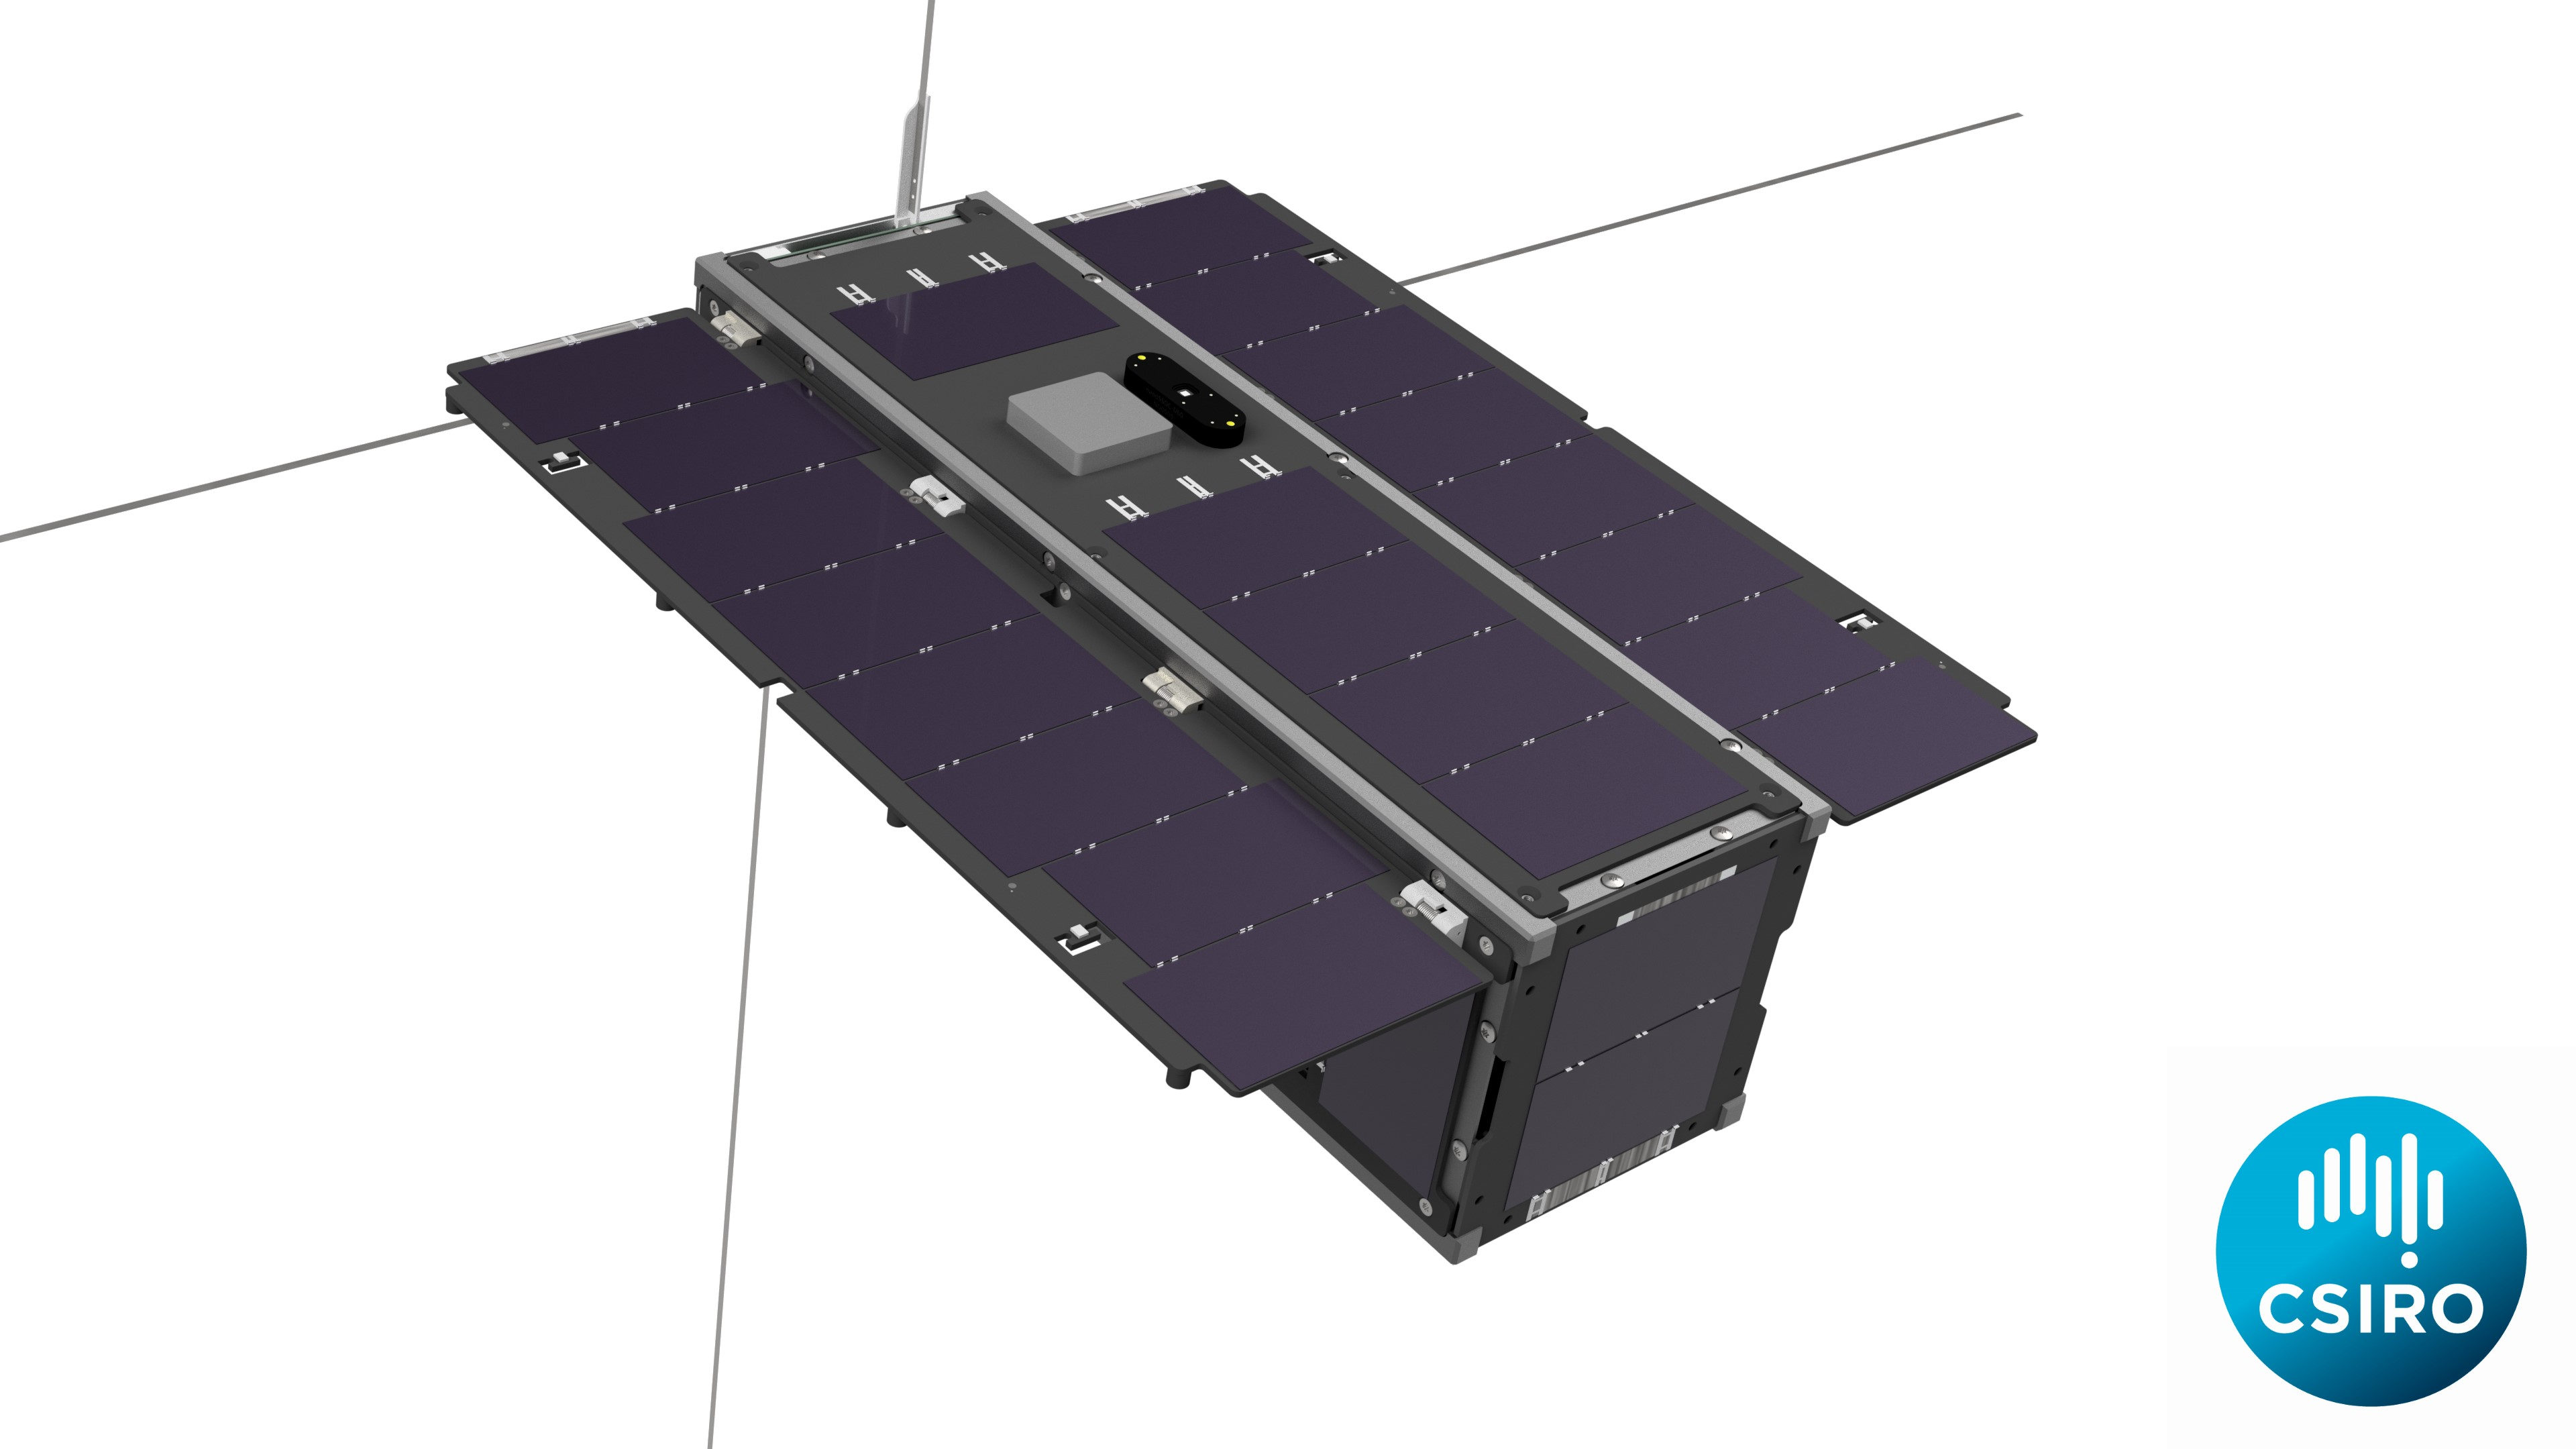 Artist Impression of CSIROSat -1 CubeSat from above.